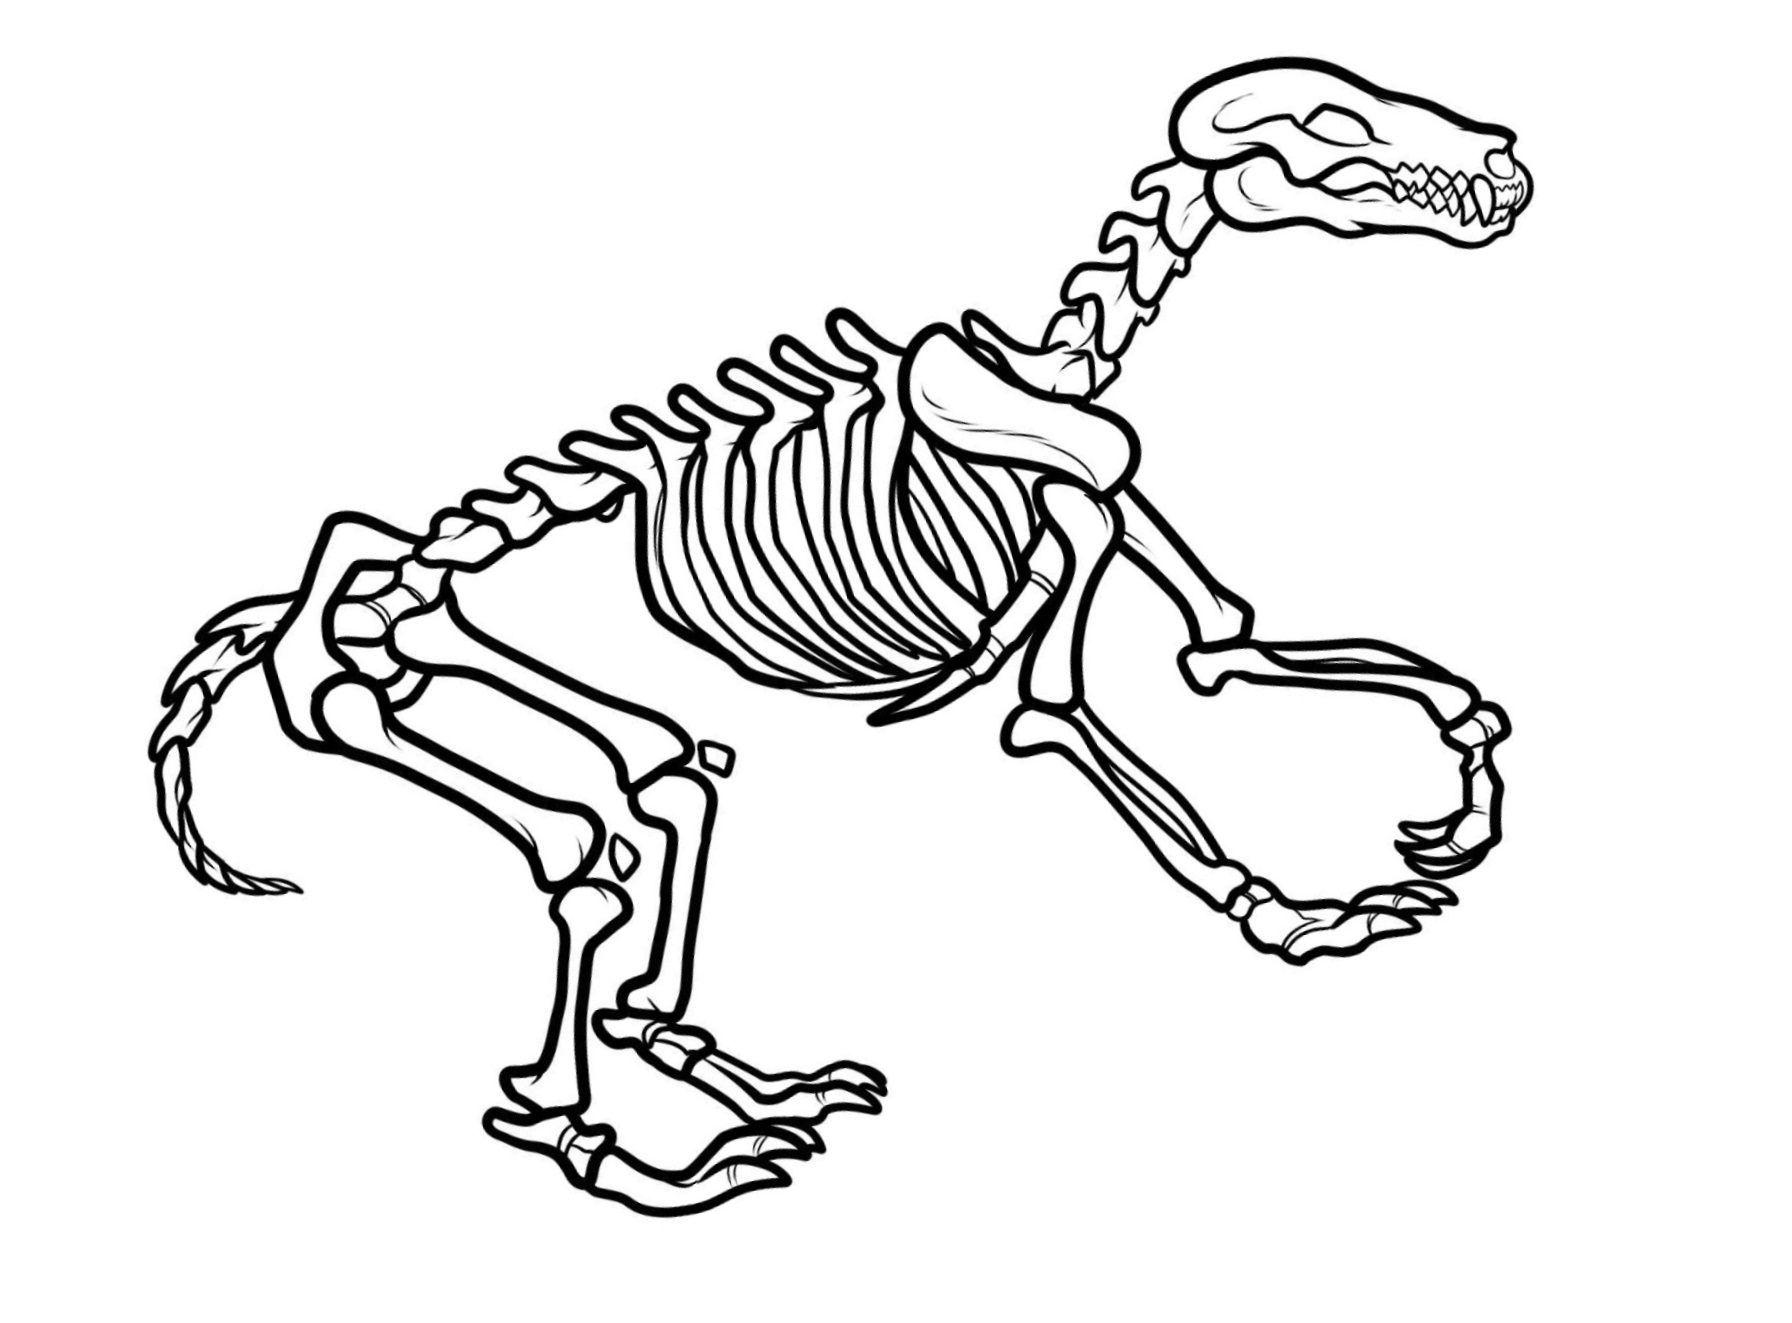 1792x1323 Impressive Dinosaur Bones Coloring Pages Awesome Ideas